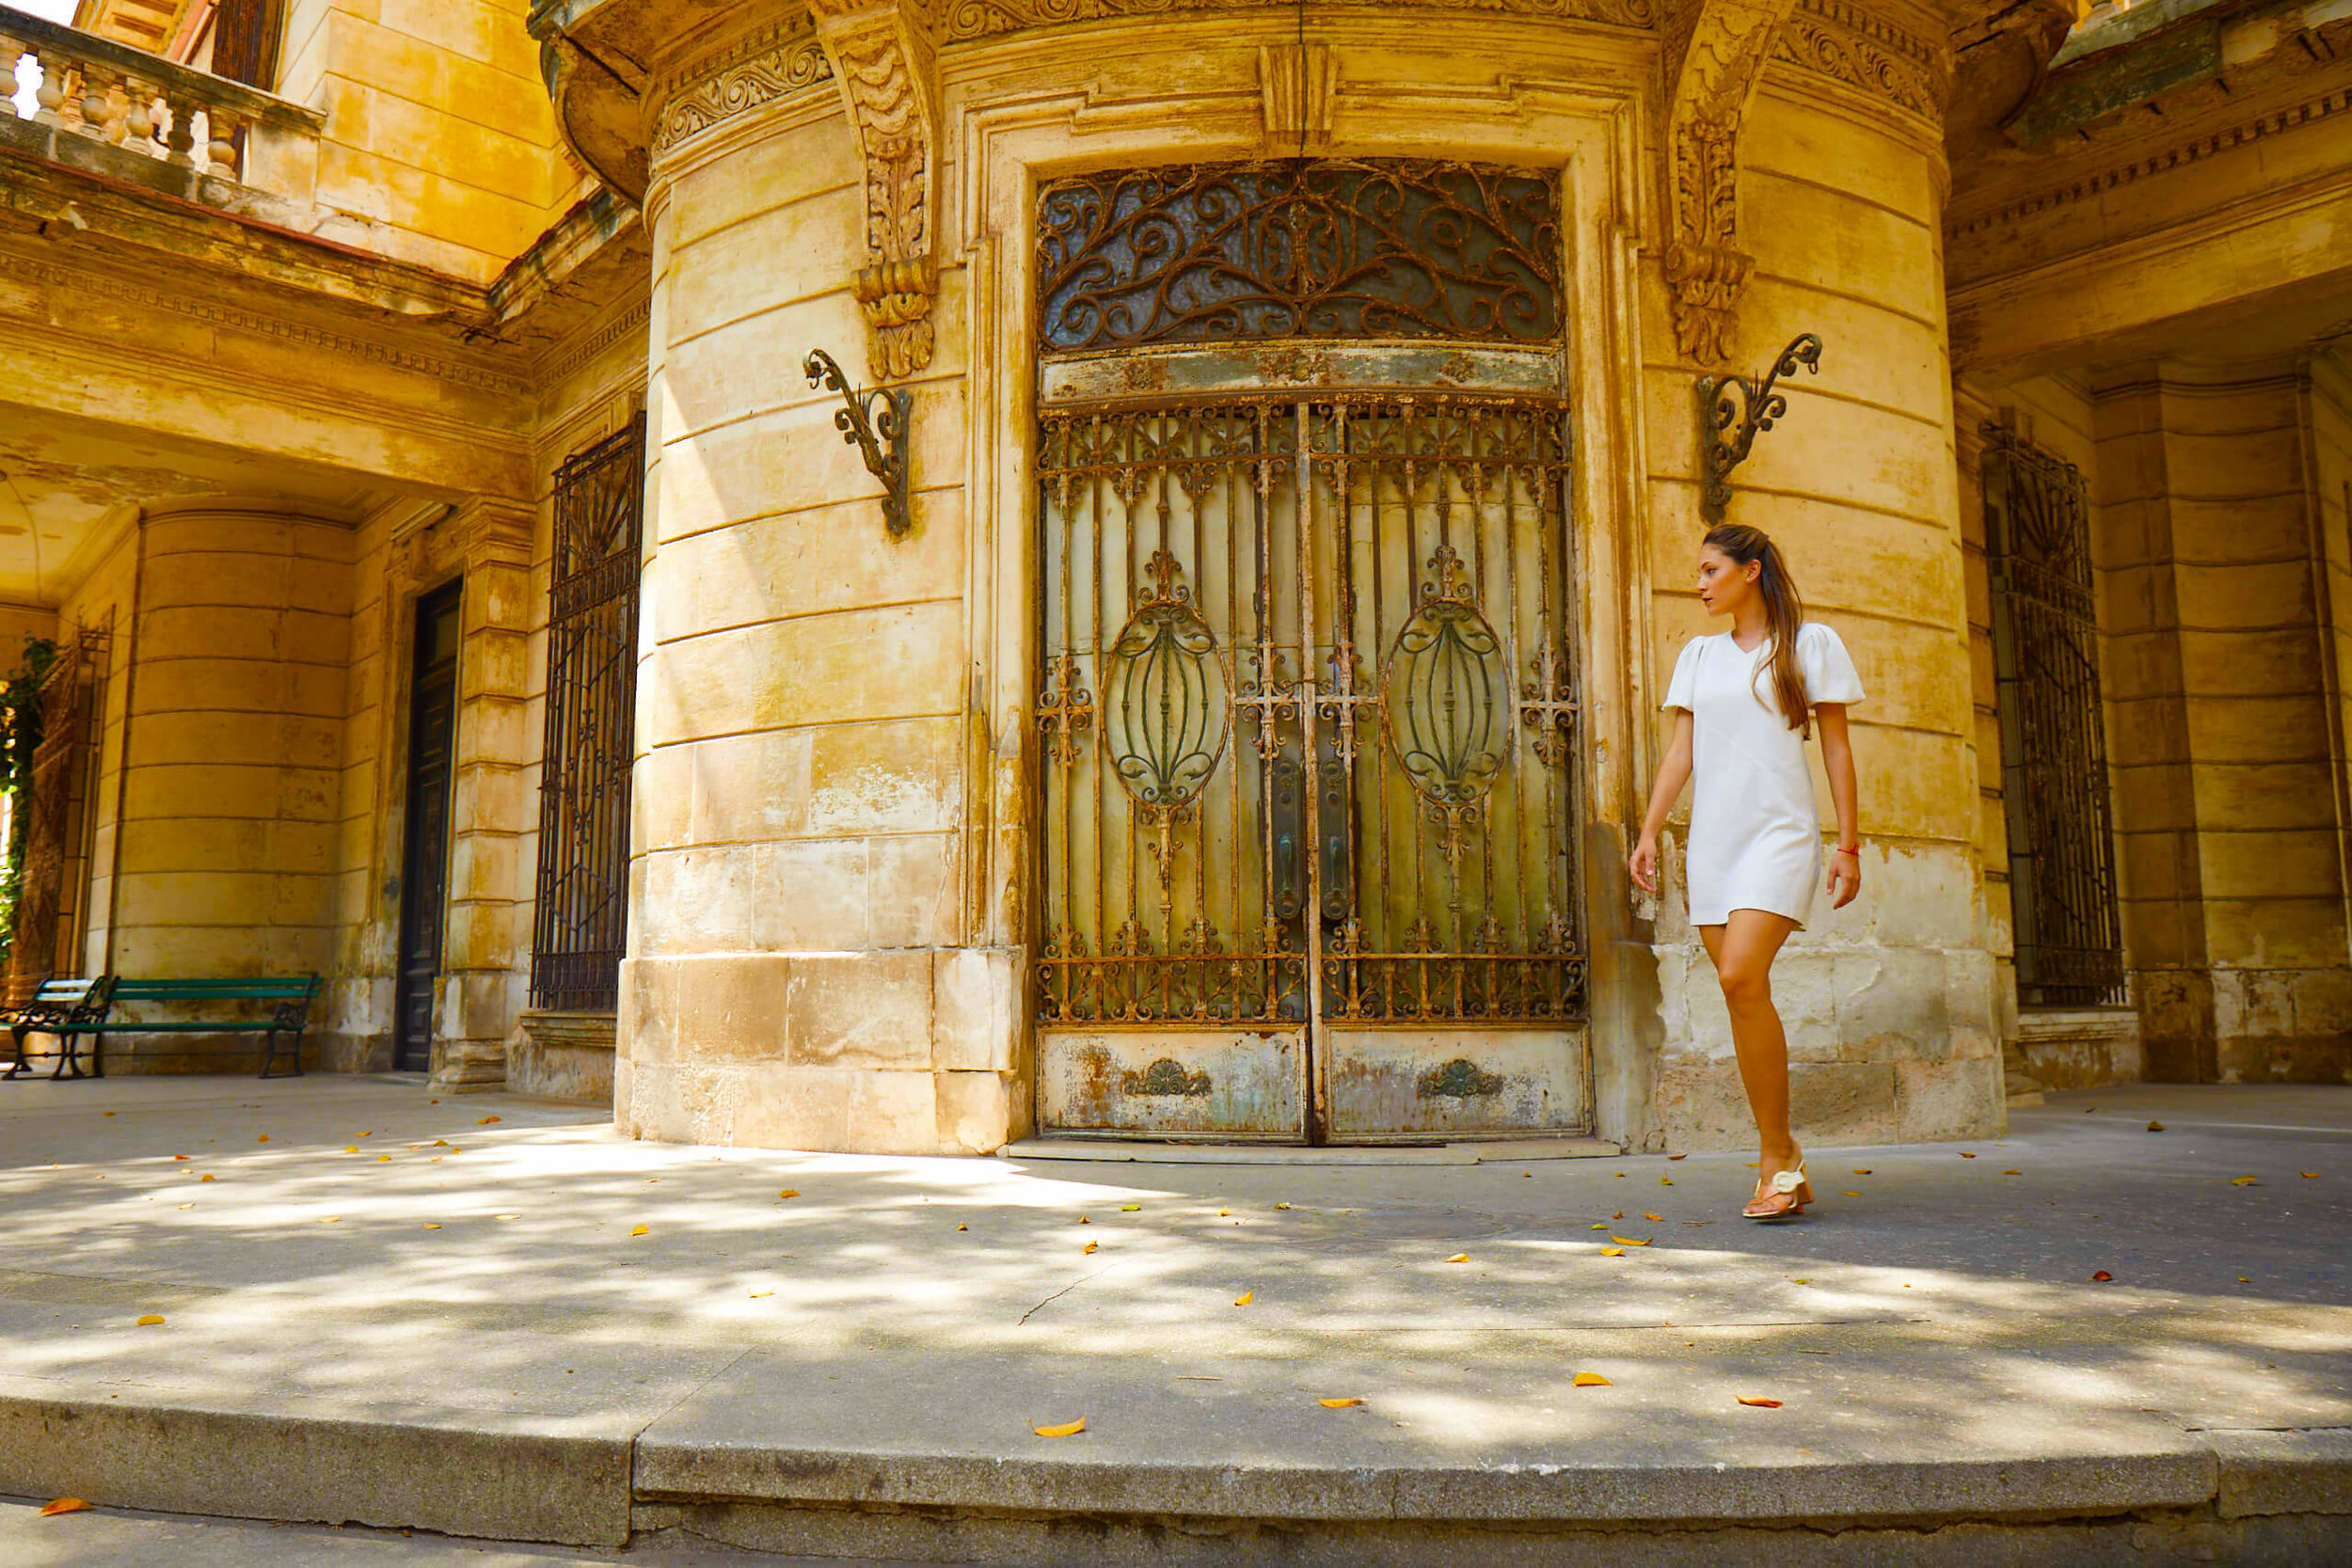 private_journeys_colonial_homes_havana_vedado_cuba.jpg